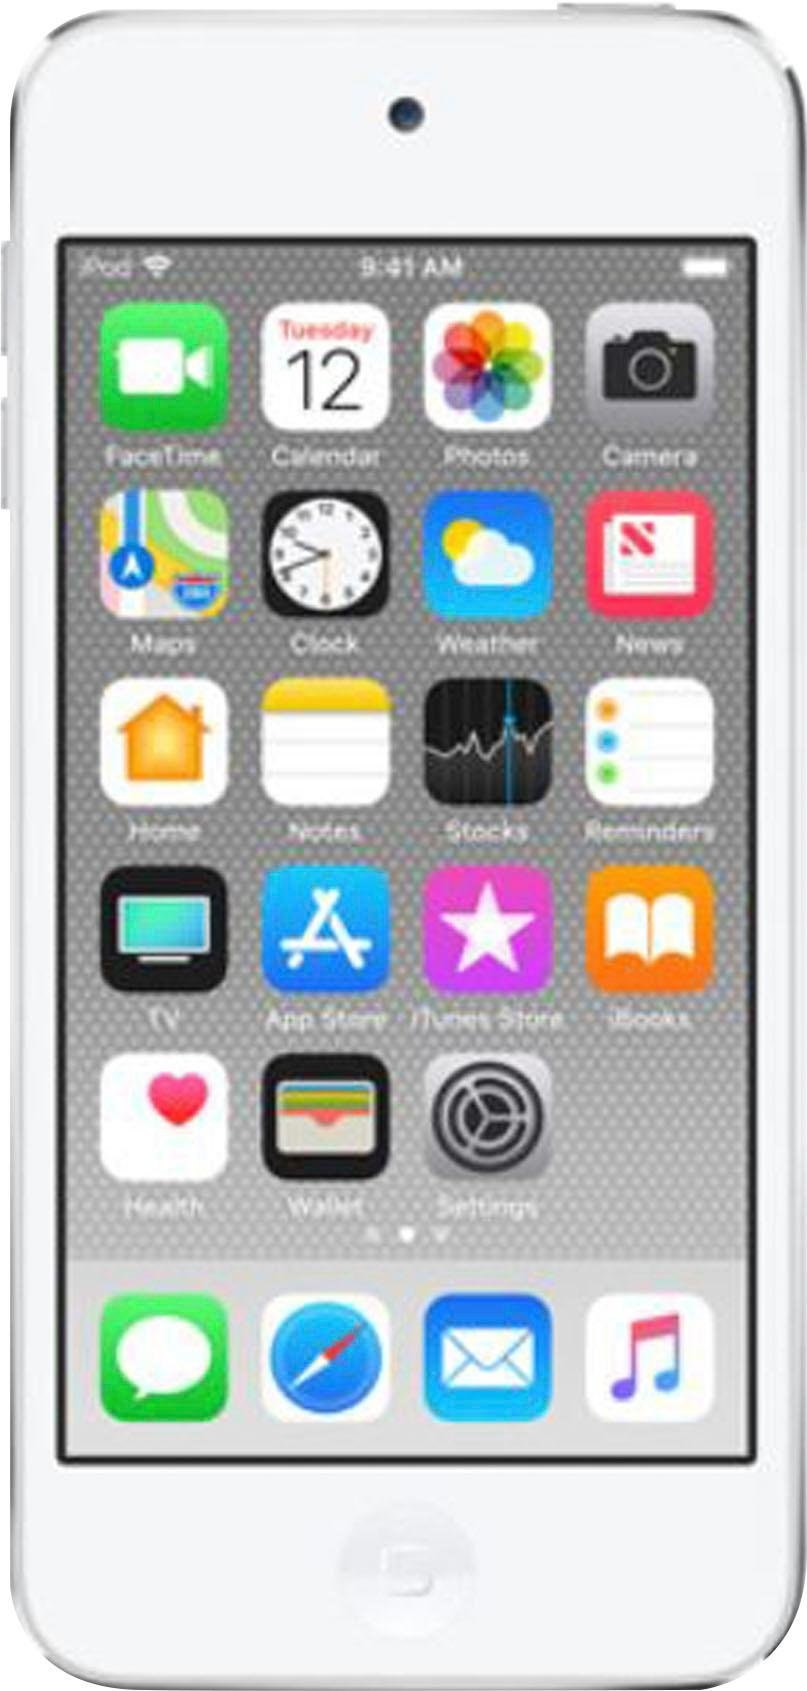 Apple »iPod touch 128 GB« MP4-speler (Bluetooth, WLAN (wifi)) online kopen op otto.nl